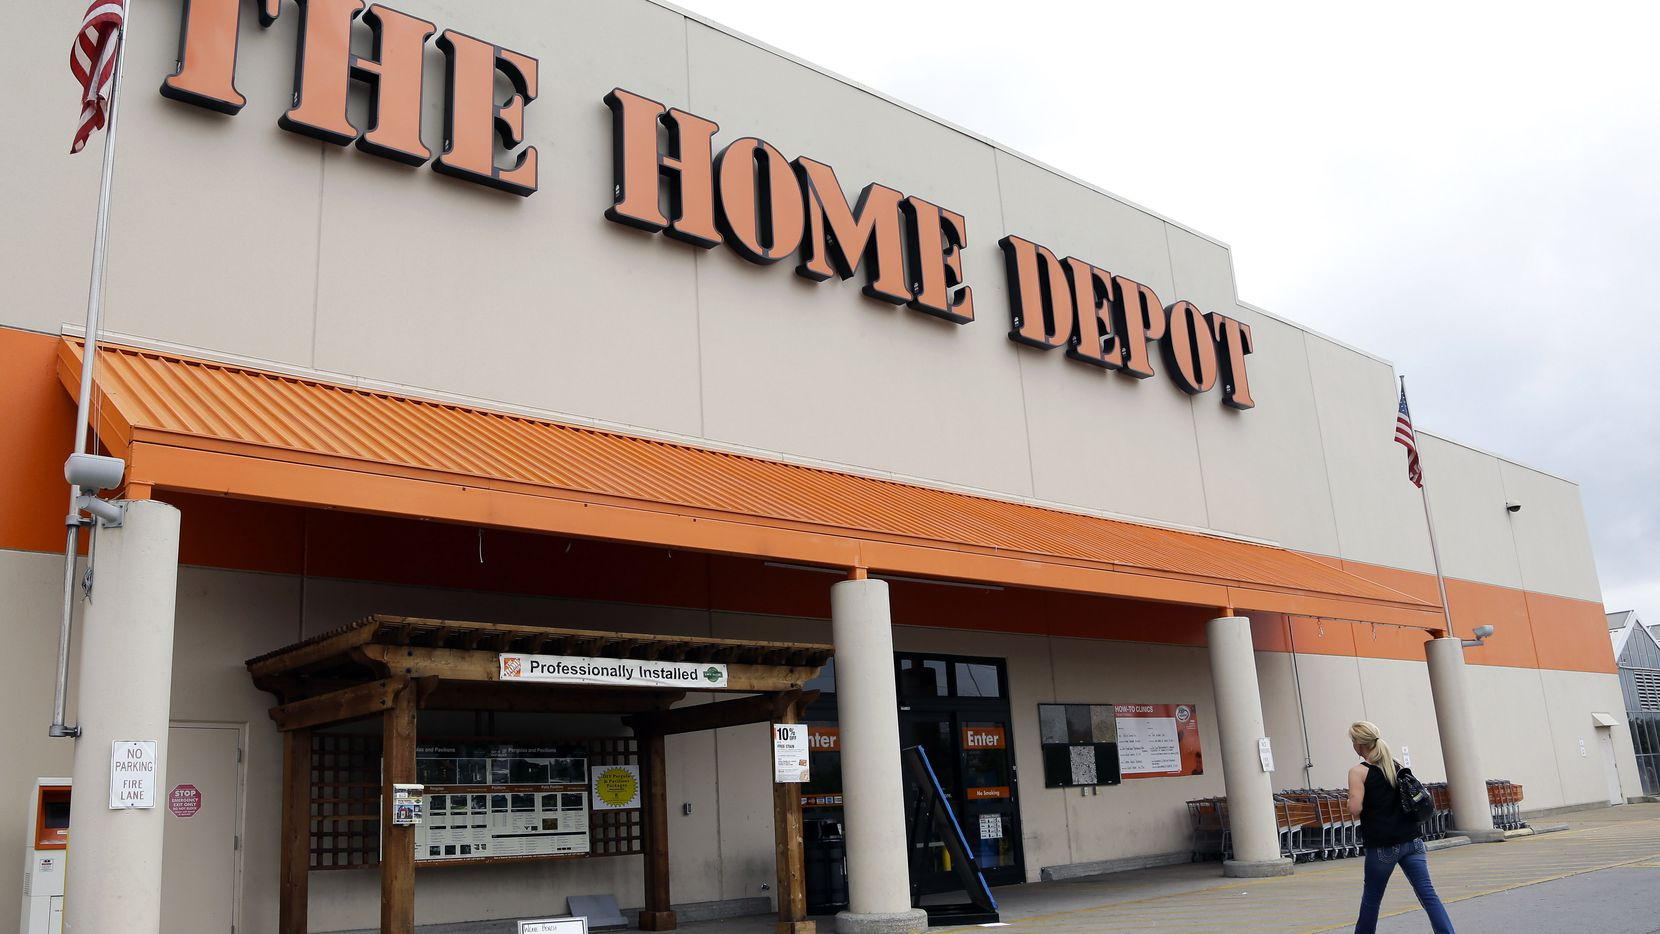 Arlington Man Schemed 1 1 Million Out Of Home Depot By Reusing Receipts For Refunds